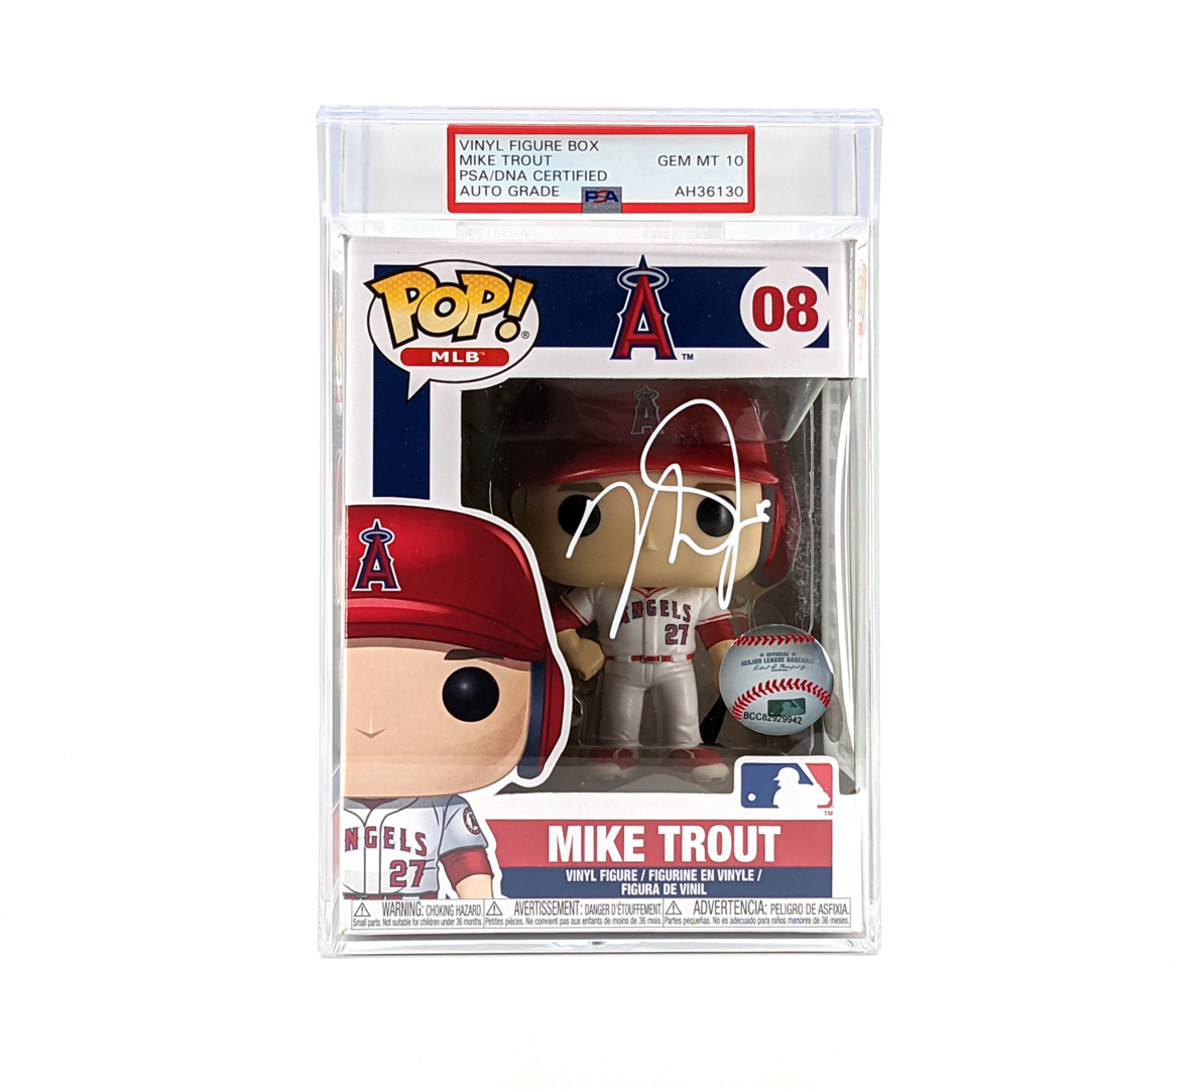 PSA-certified and encapsulated Mike Trout autographed Funko POP! vinyl figure box.